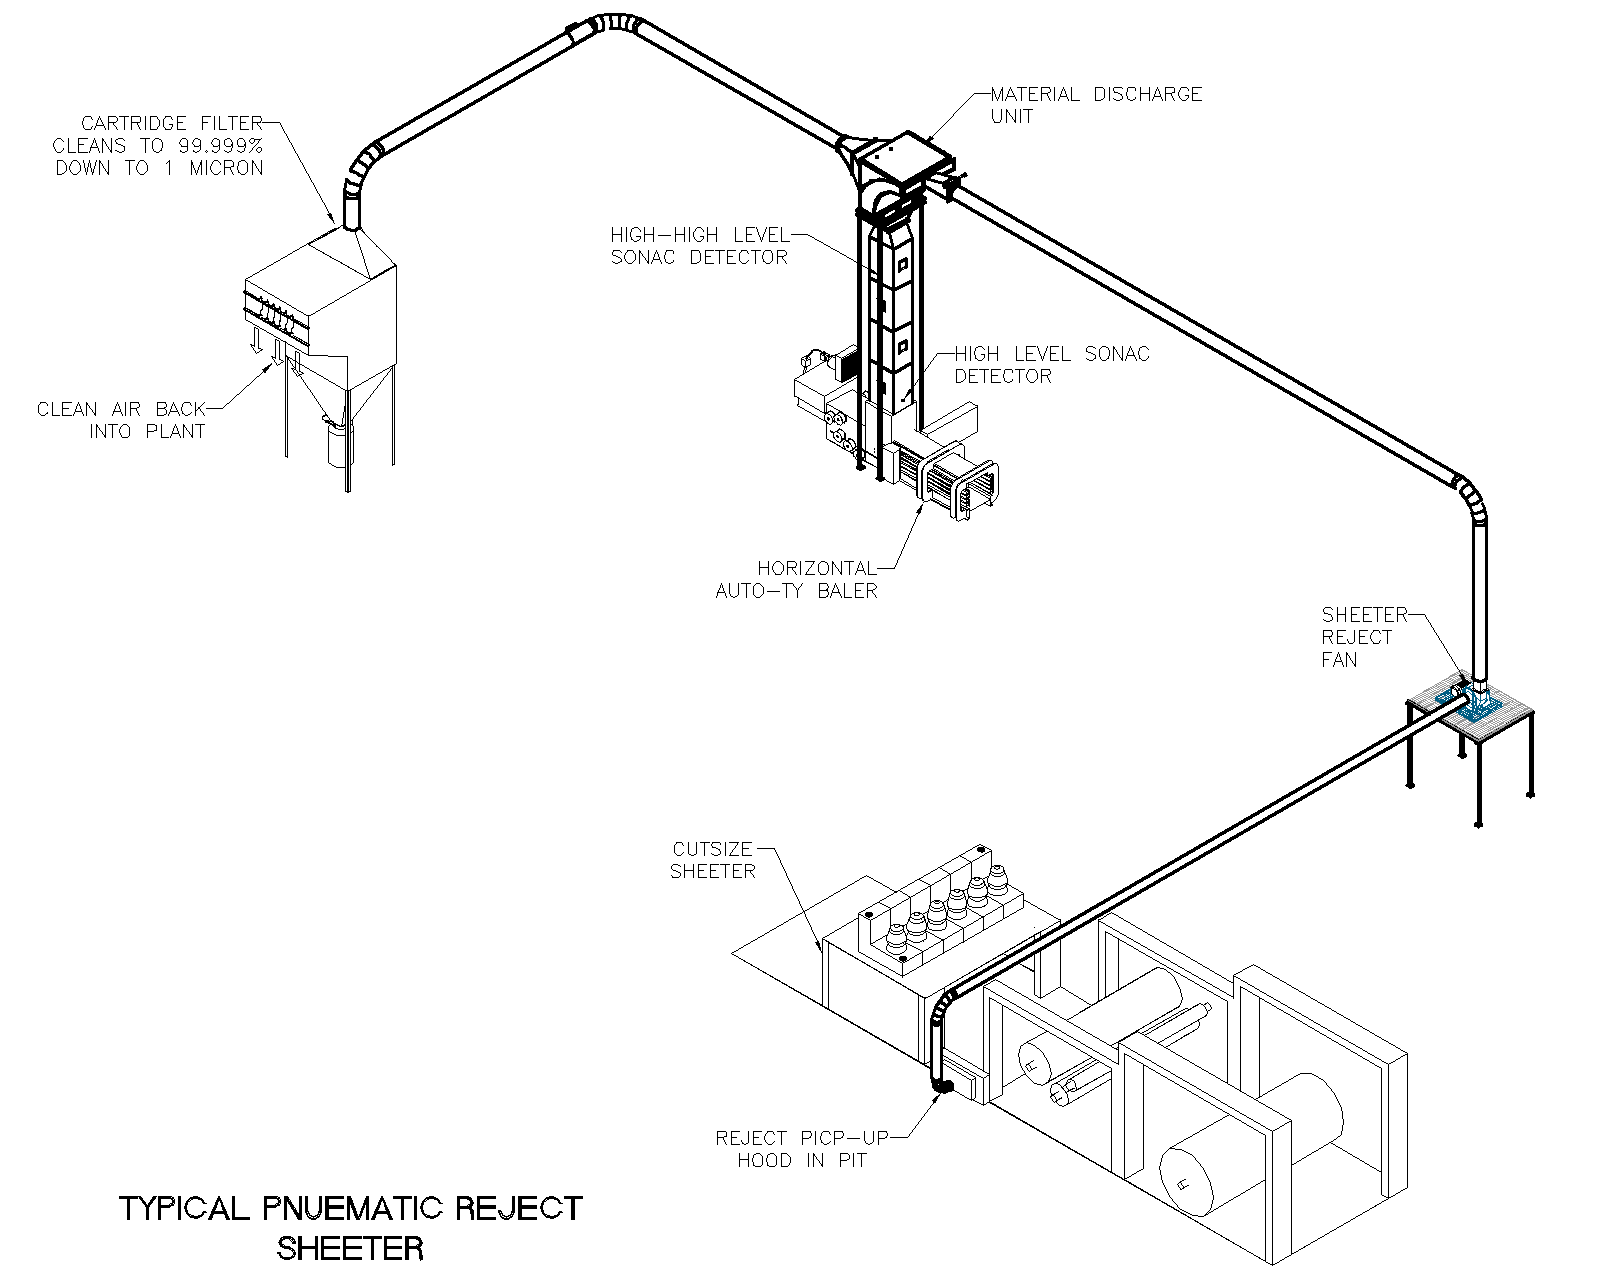 Pneumatic Reject System